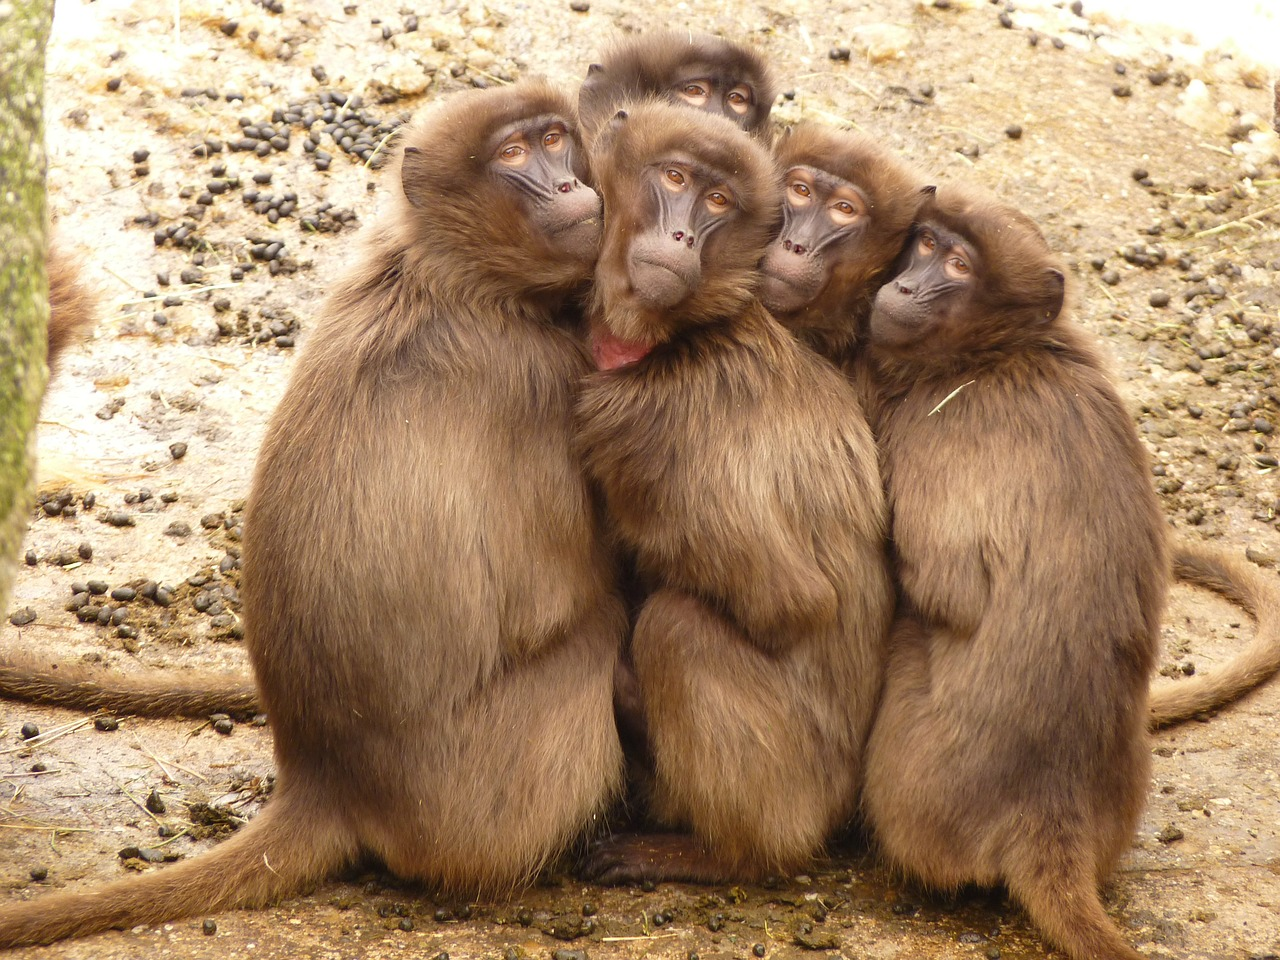 Baboons huddle together to beat the cold in a pose reminiscent of the viral Ellen DeGeneres Oscar selfie